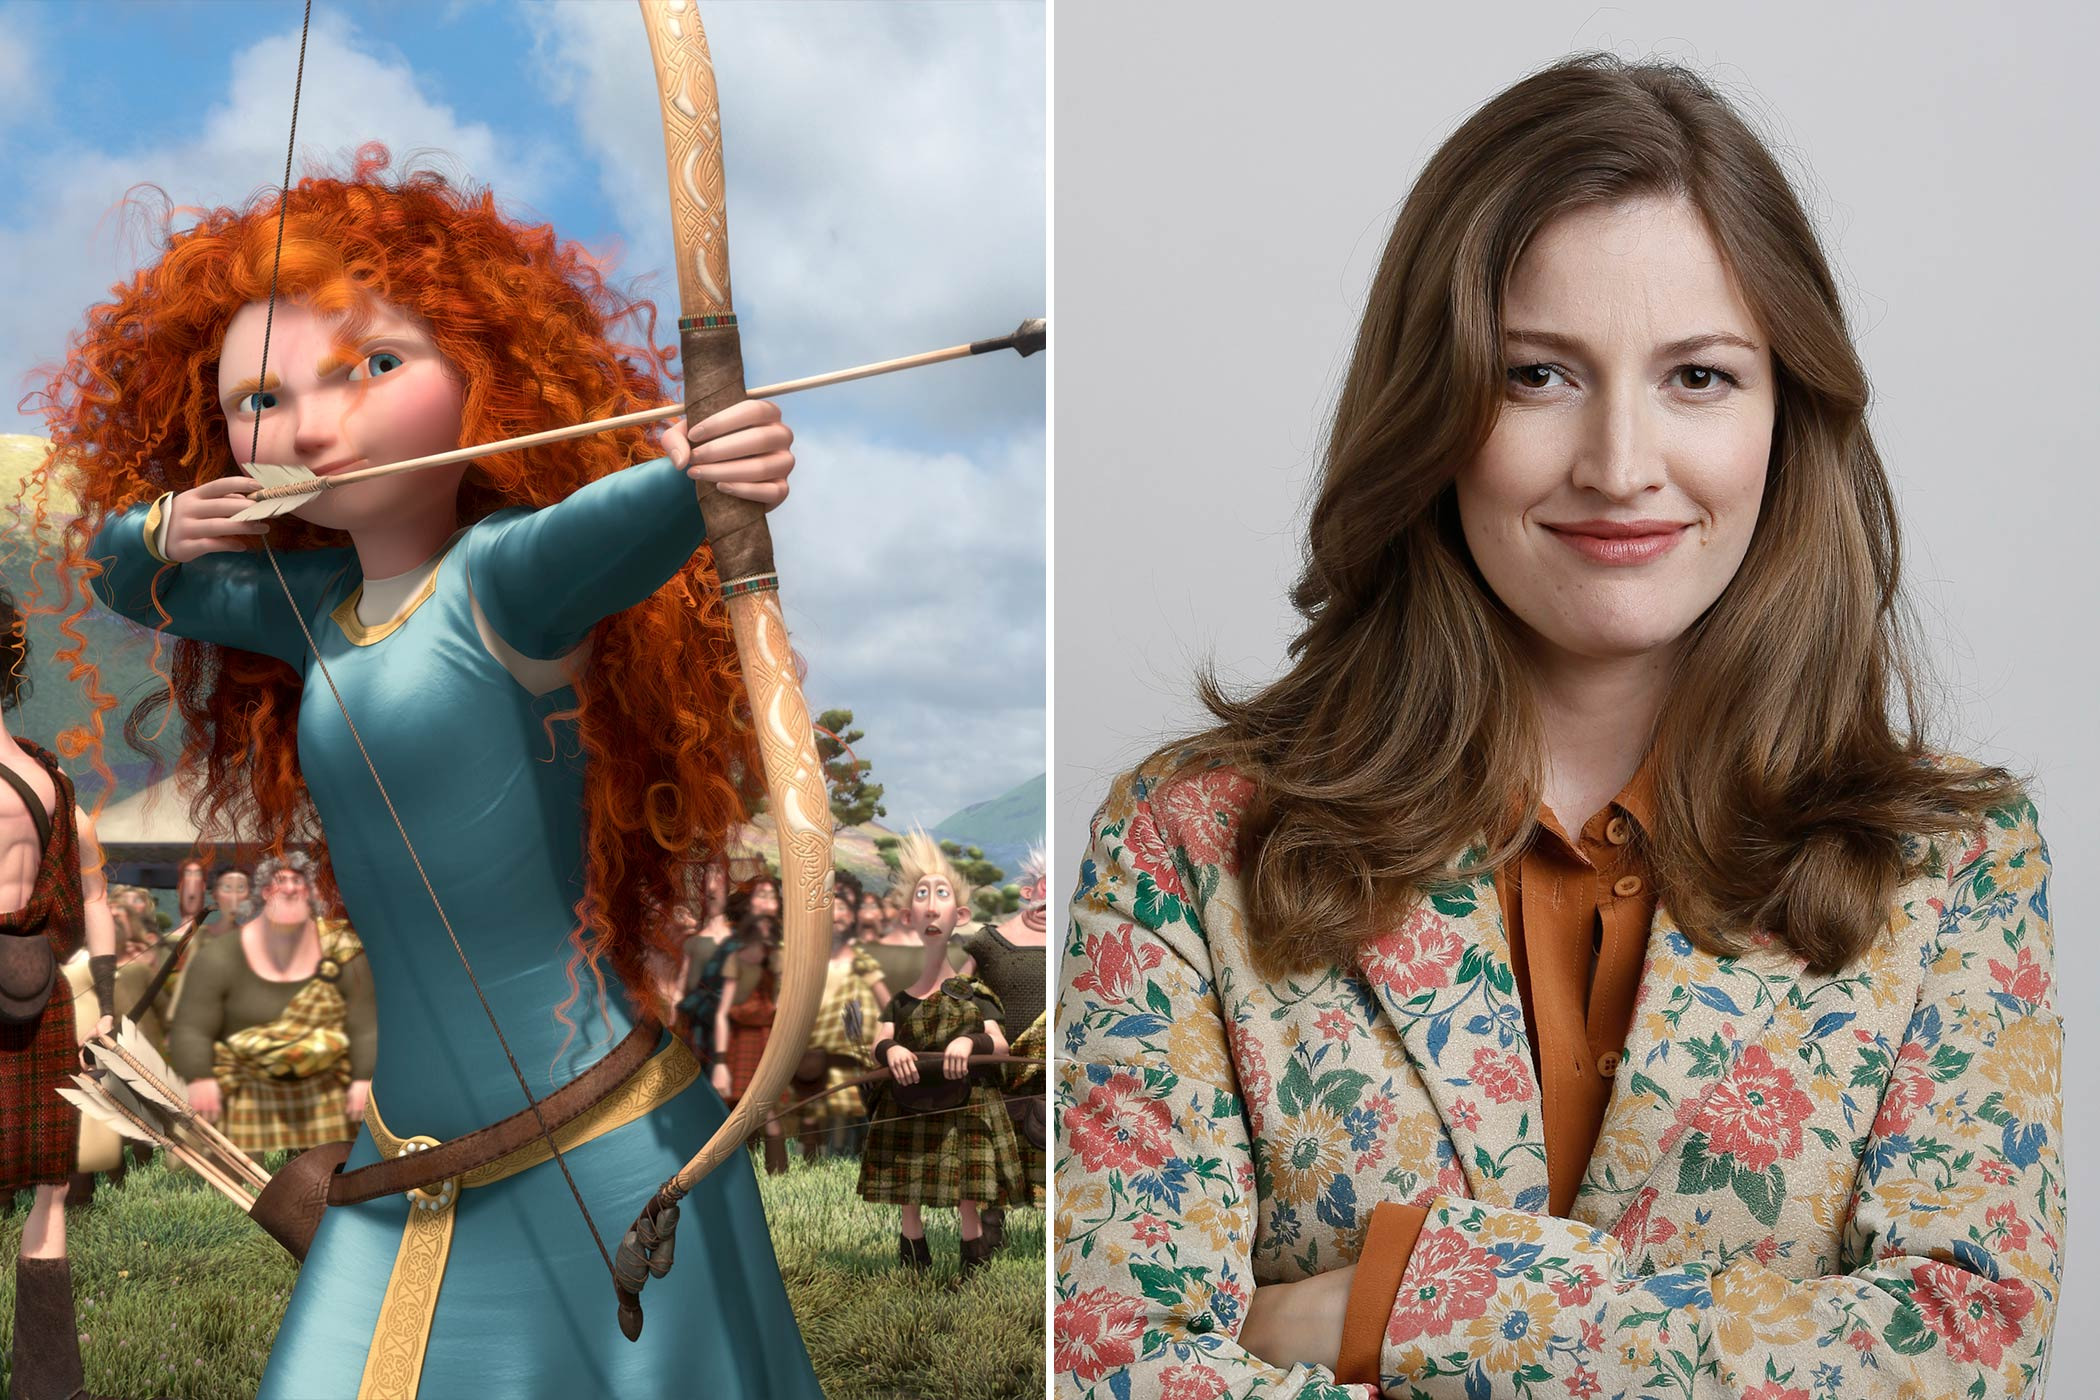 <strong>Merida: Kelly Macdonald</strong>                                   The Scottish actress made her movie debut in the cult classic <i>Trainspotting</i> and played Helena Ravenclaw in <i>Harry Potter and the Deathly Hallows – Part 2</i> before voicing Merida, the first Disney princess produced by Pixar.